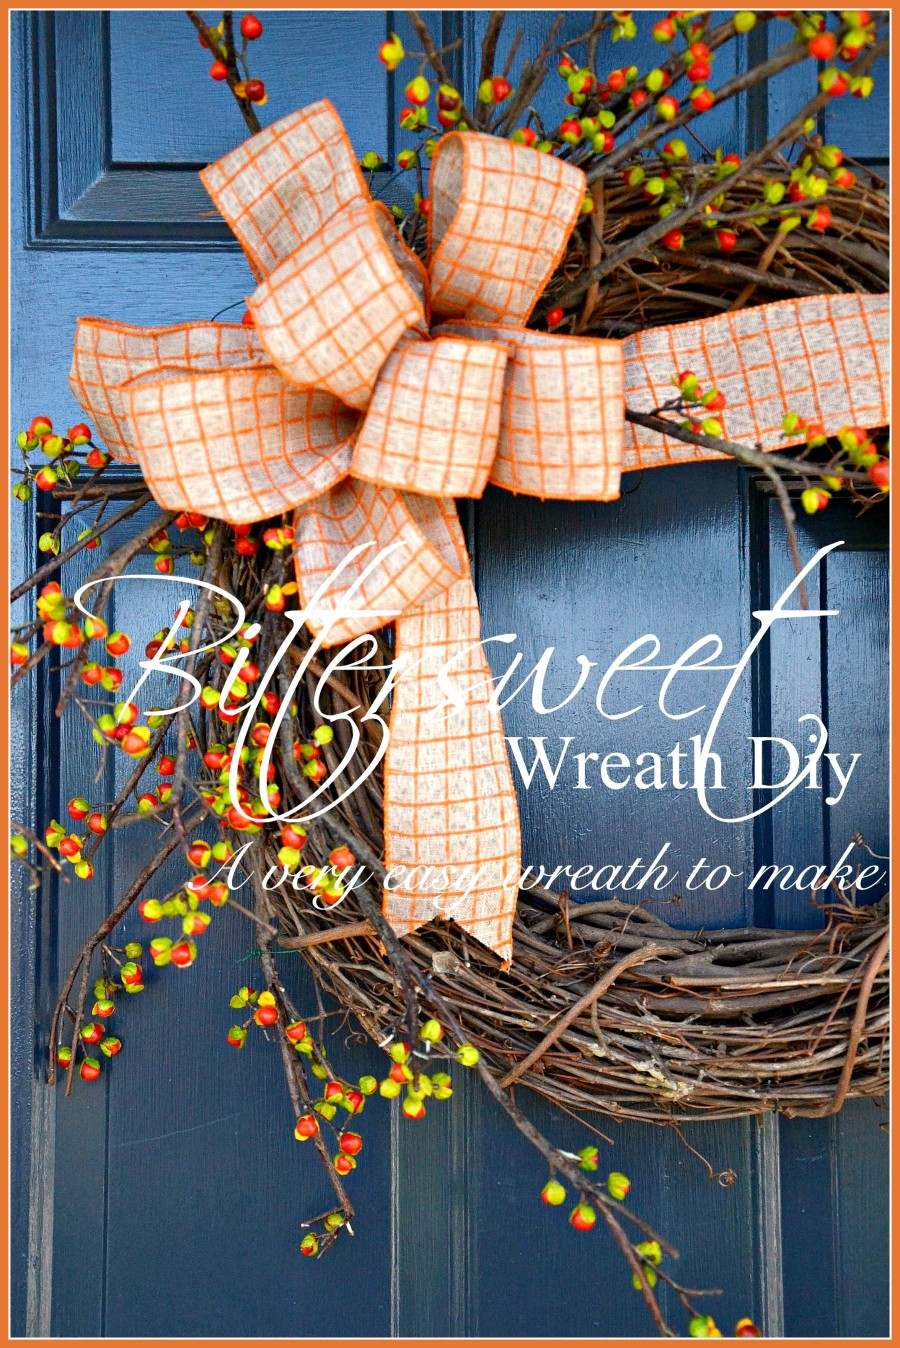 BITTERSWEET WREATH DIY